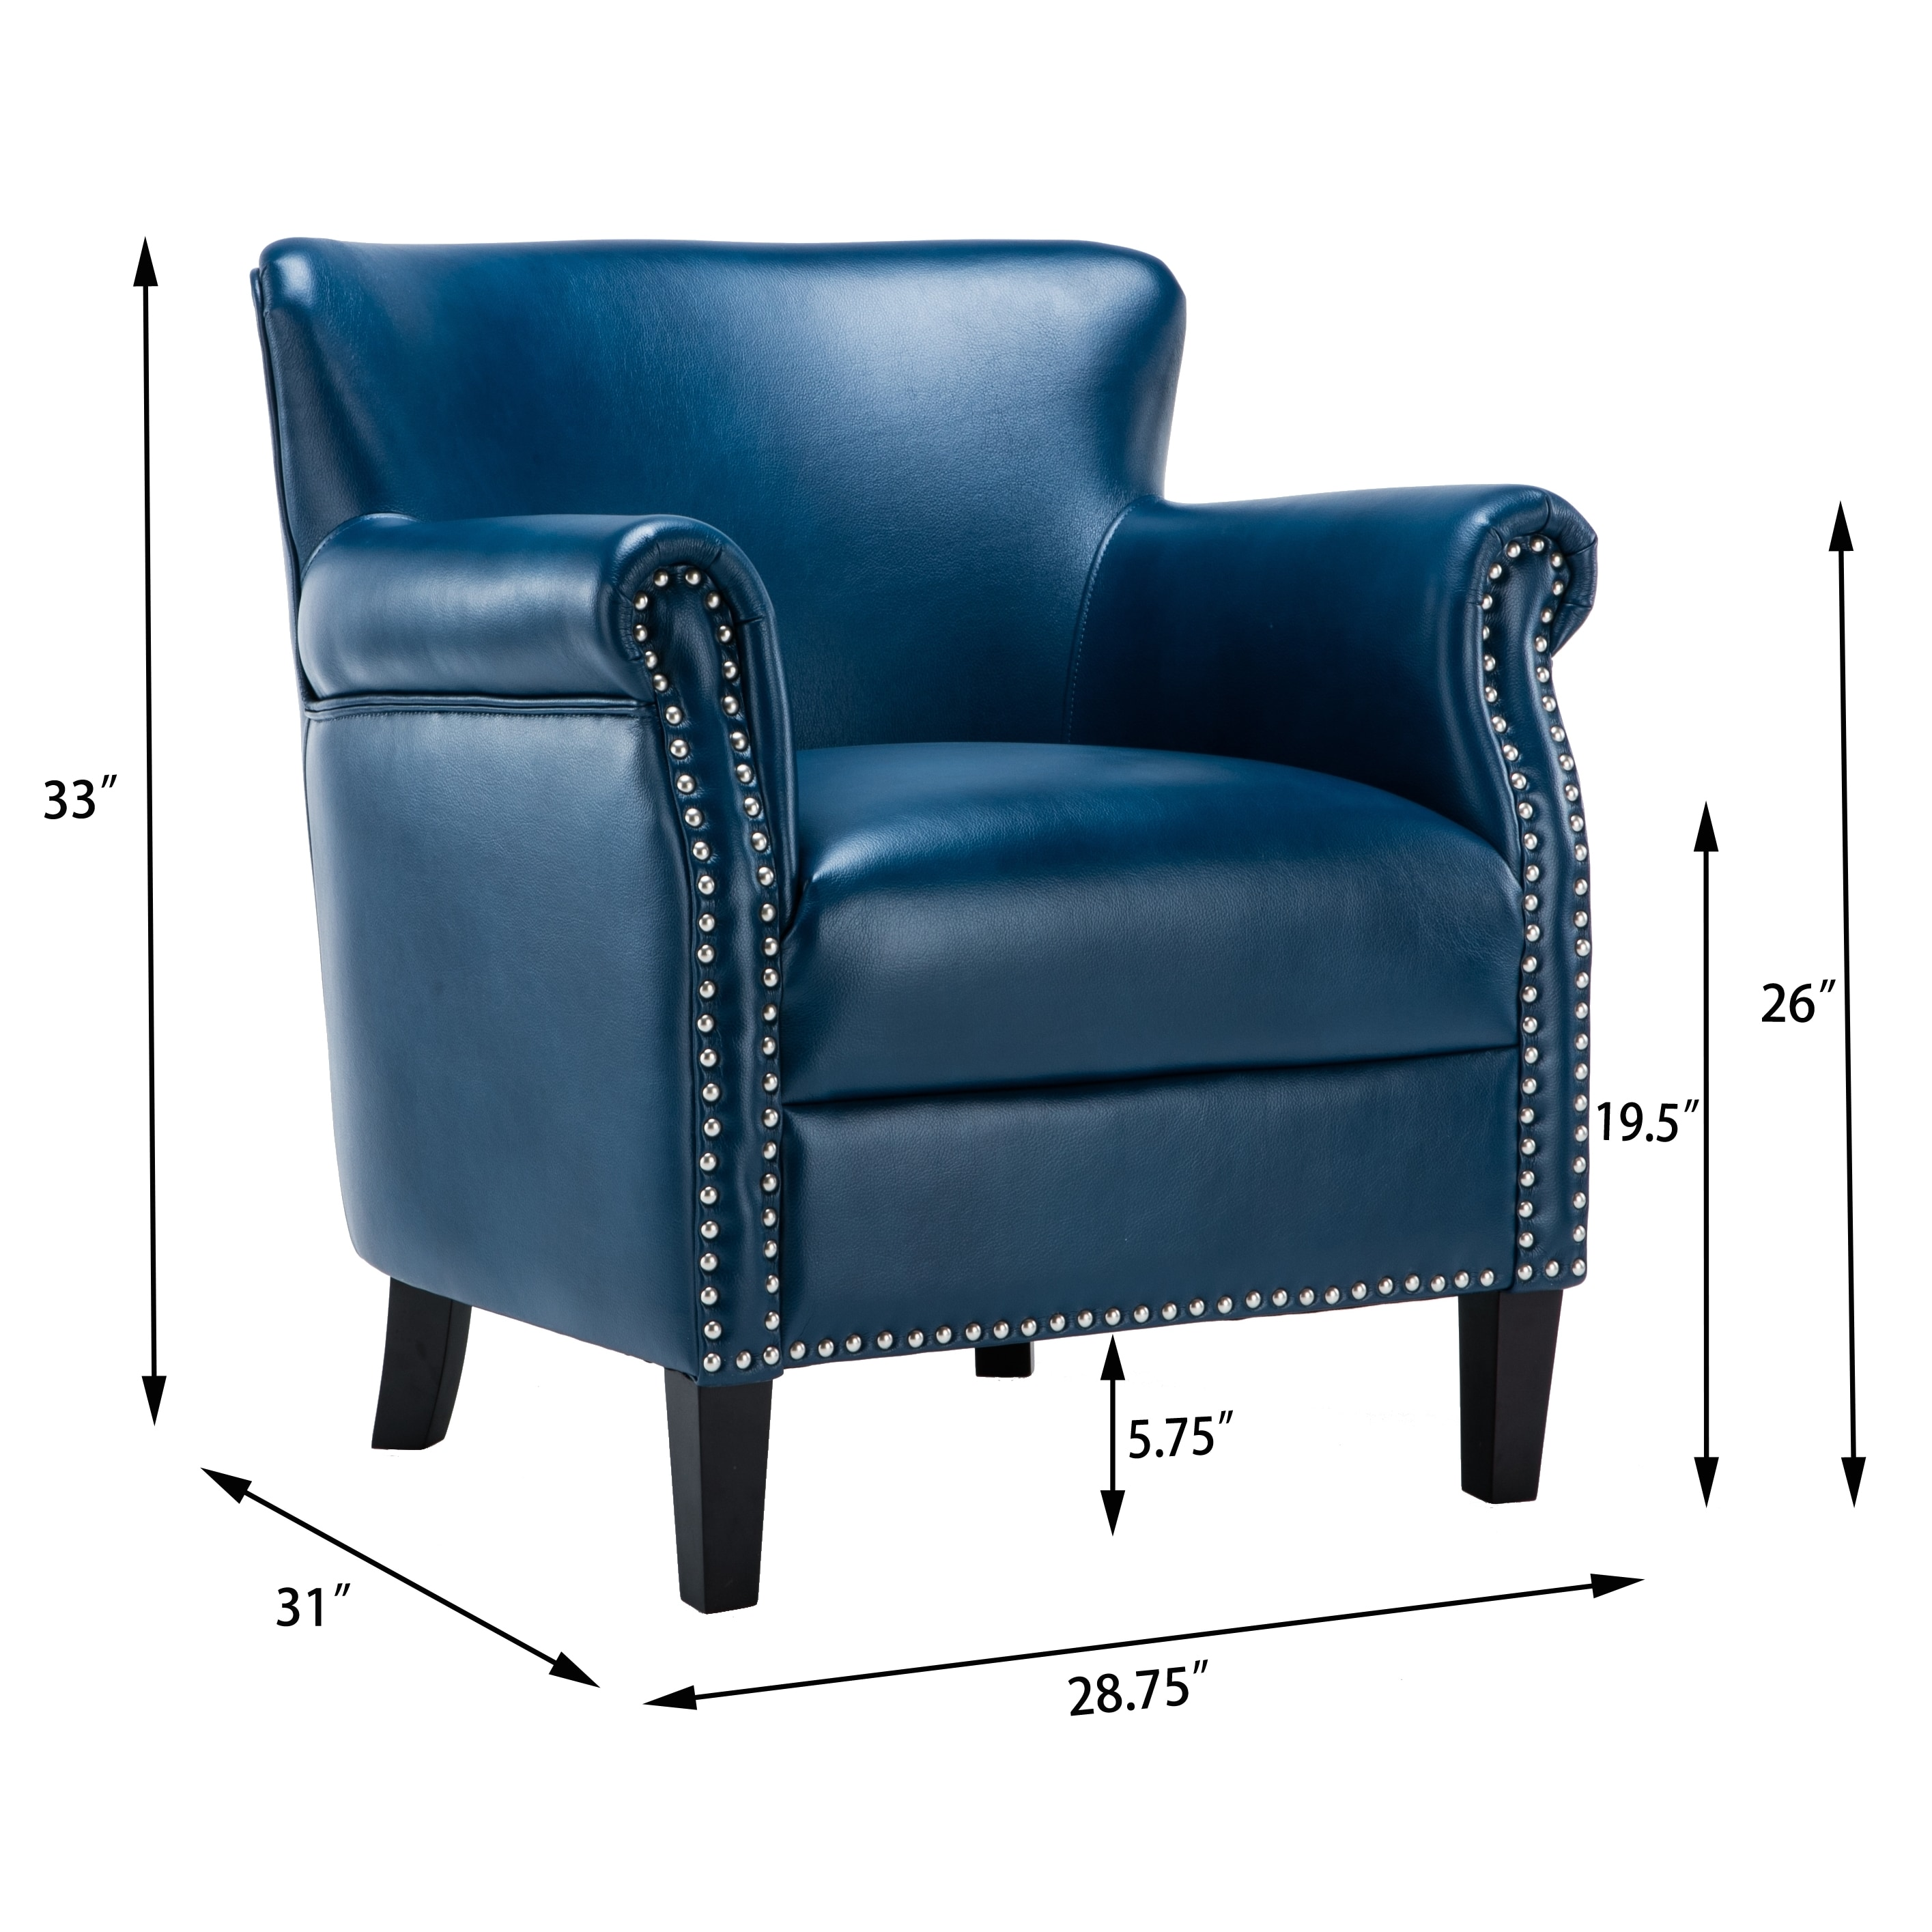 Hendrick Navy Blue Club Chair By Greyson Living Free Shipping Today 14039135